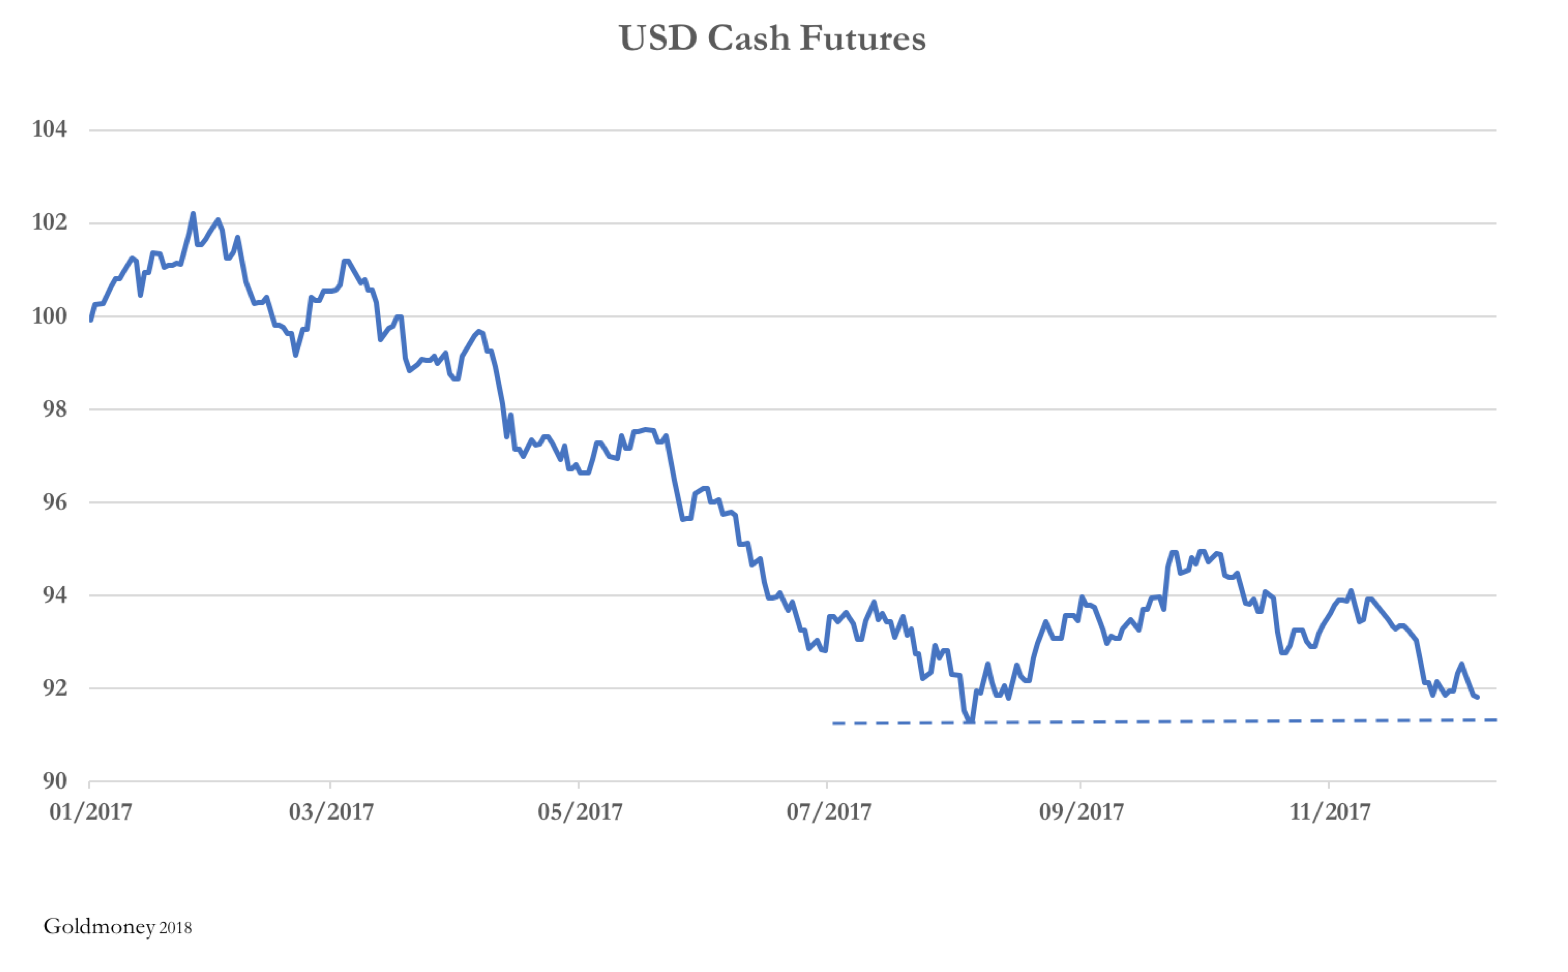 USD Cash Futures